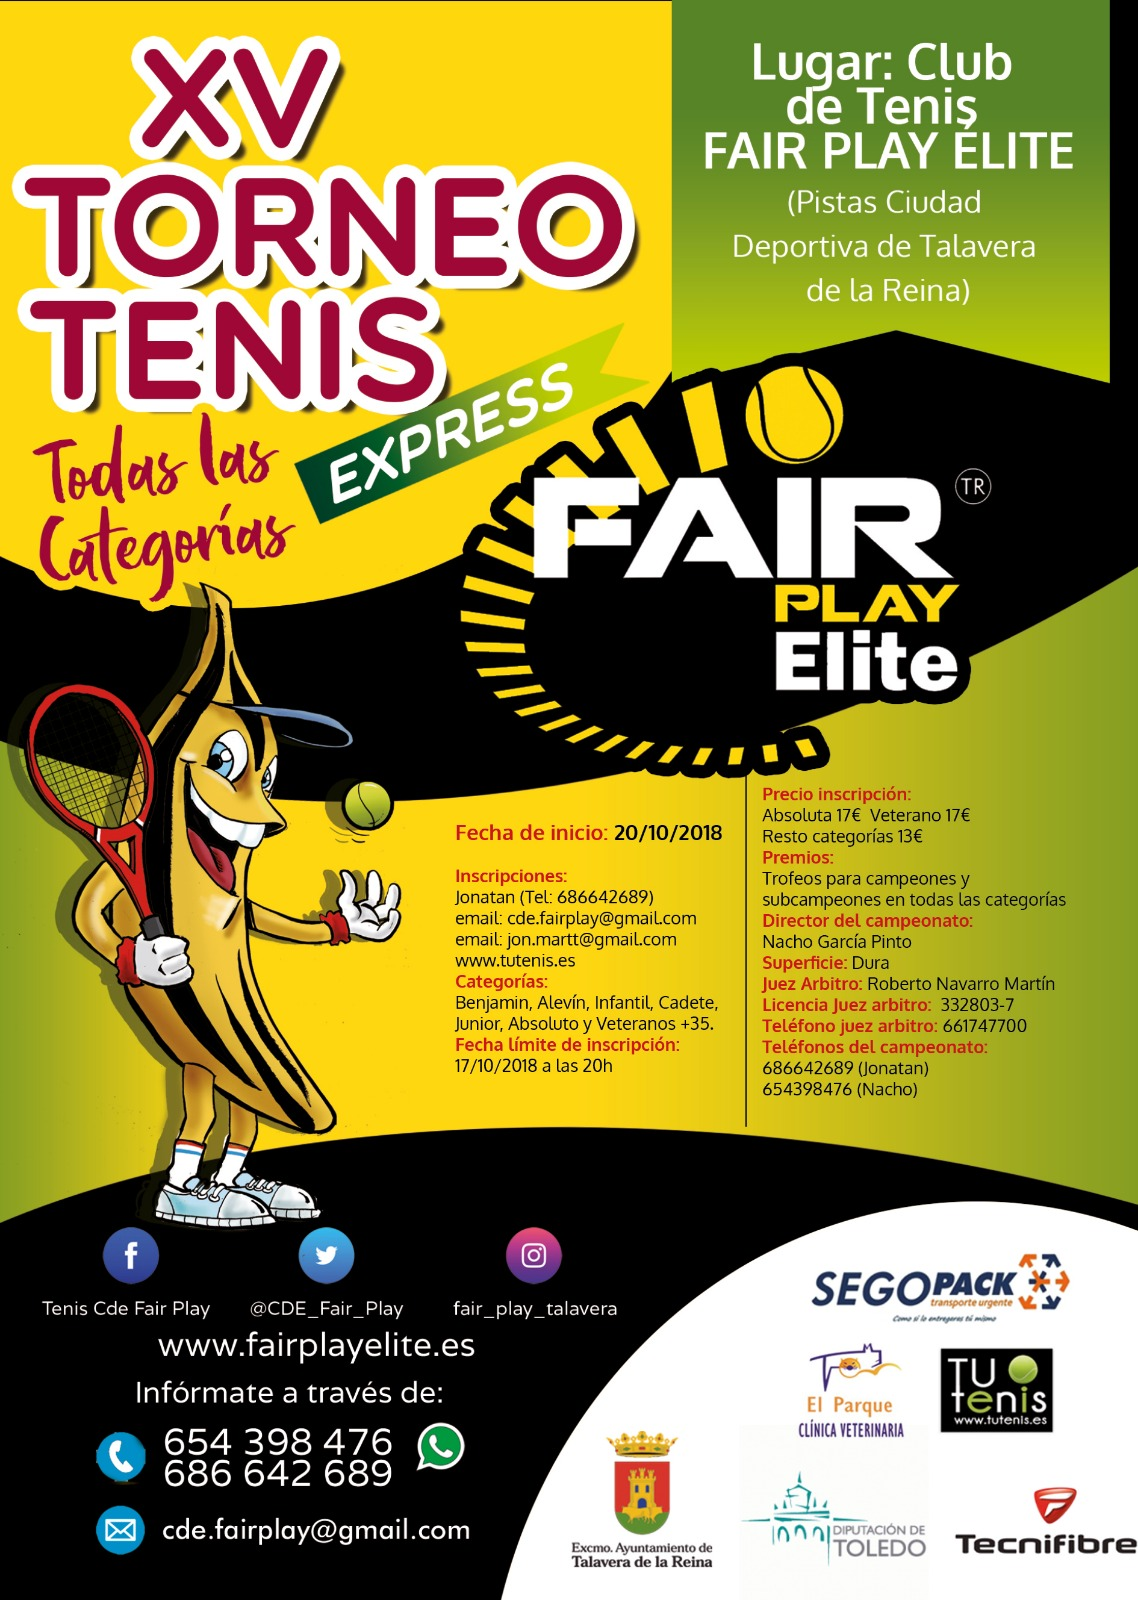 torneo_fair_play_elite_express